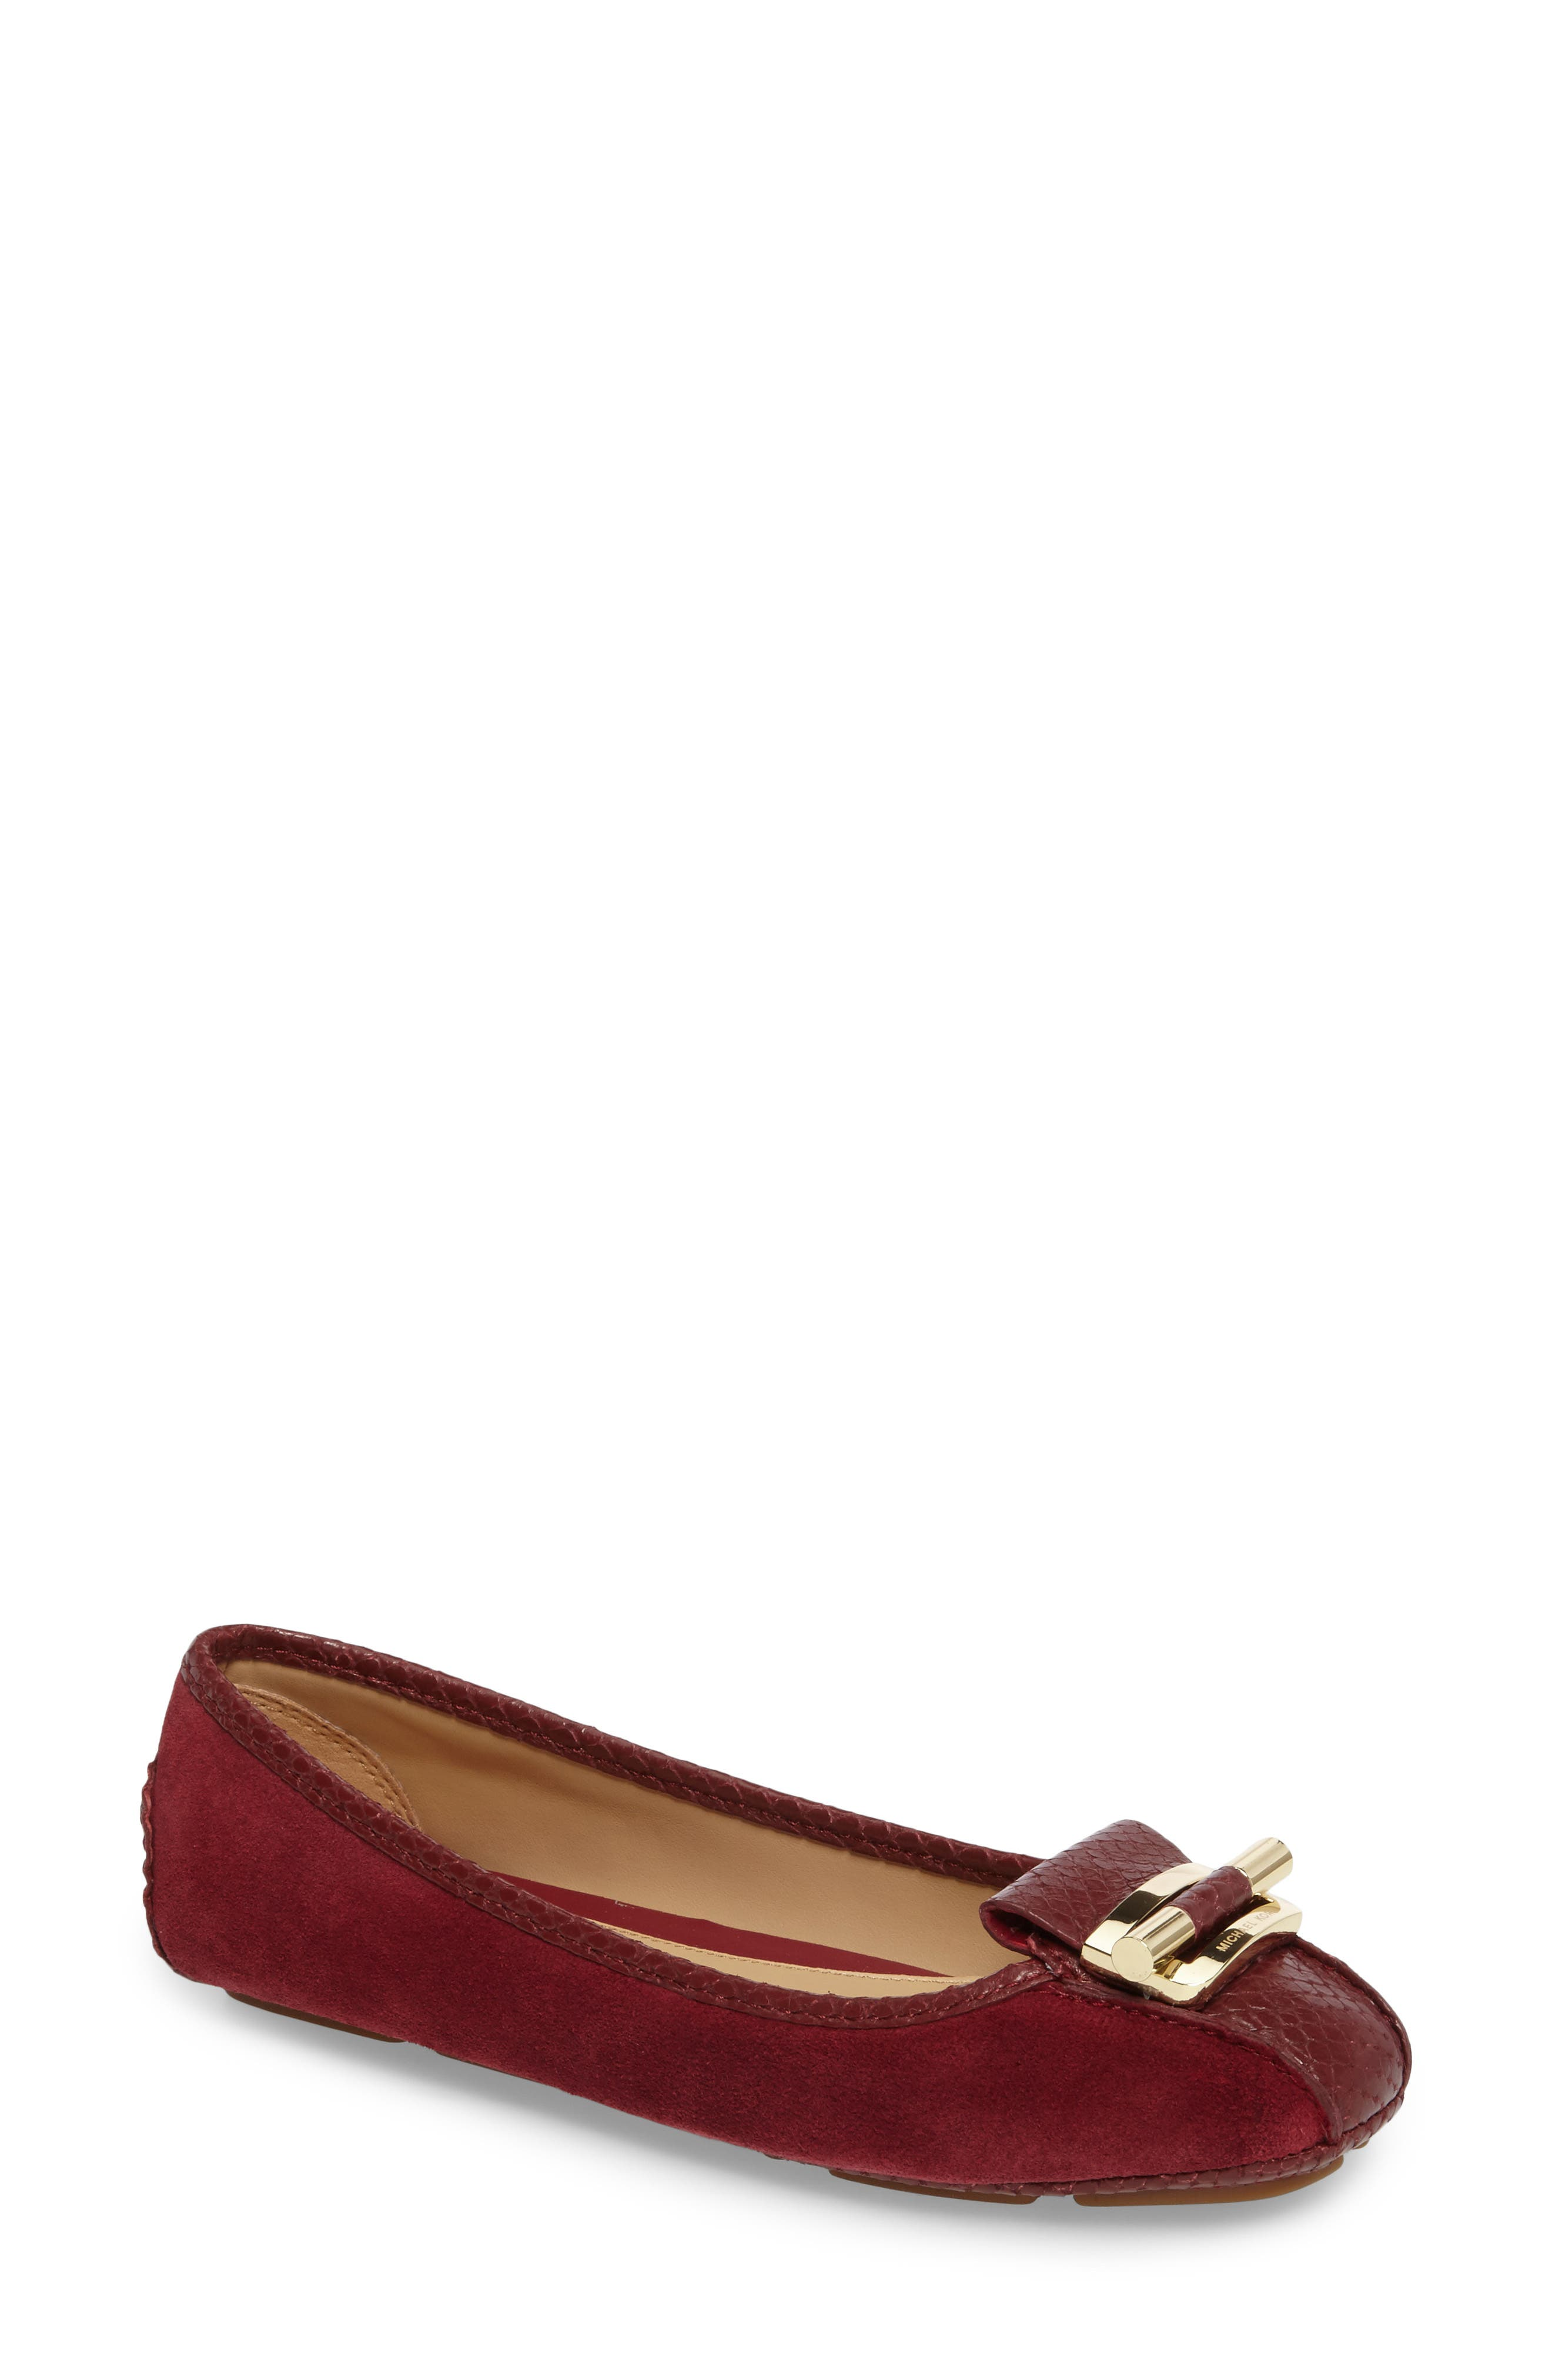 Gloria Flat,                             Main thumbnail 1, color,                             Mulberry Snake Print Suede